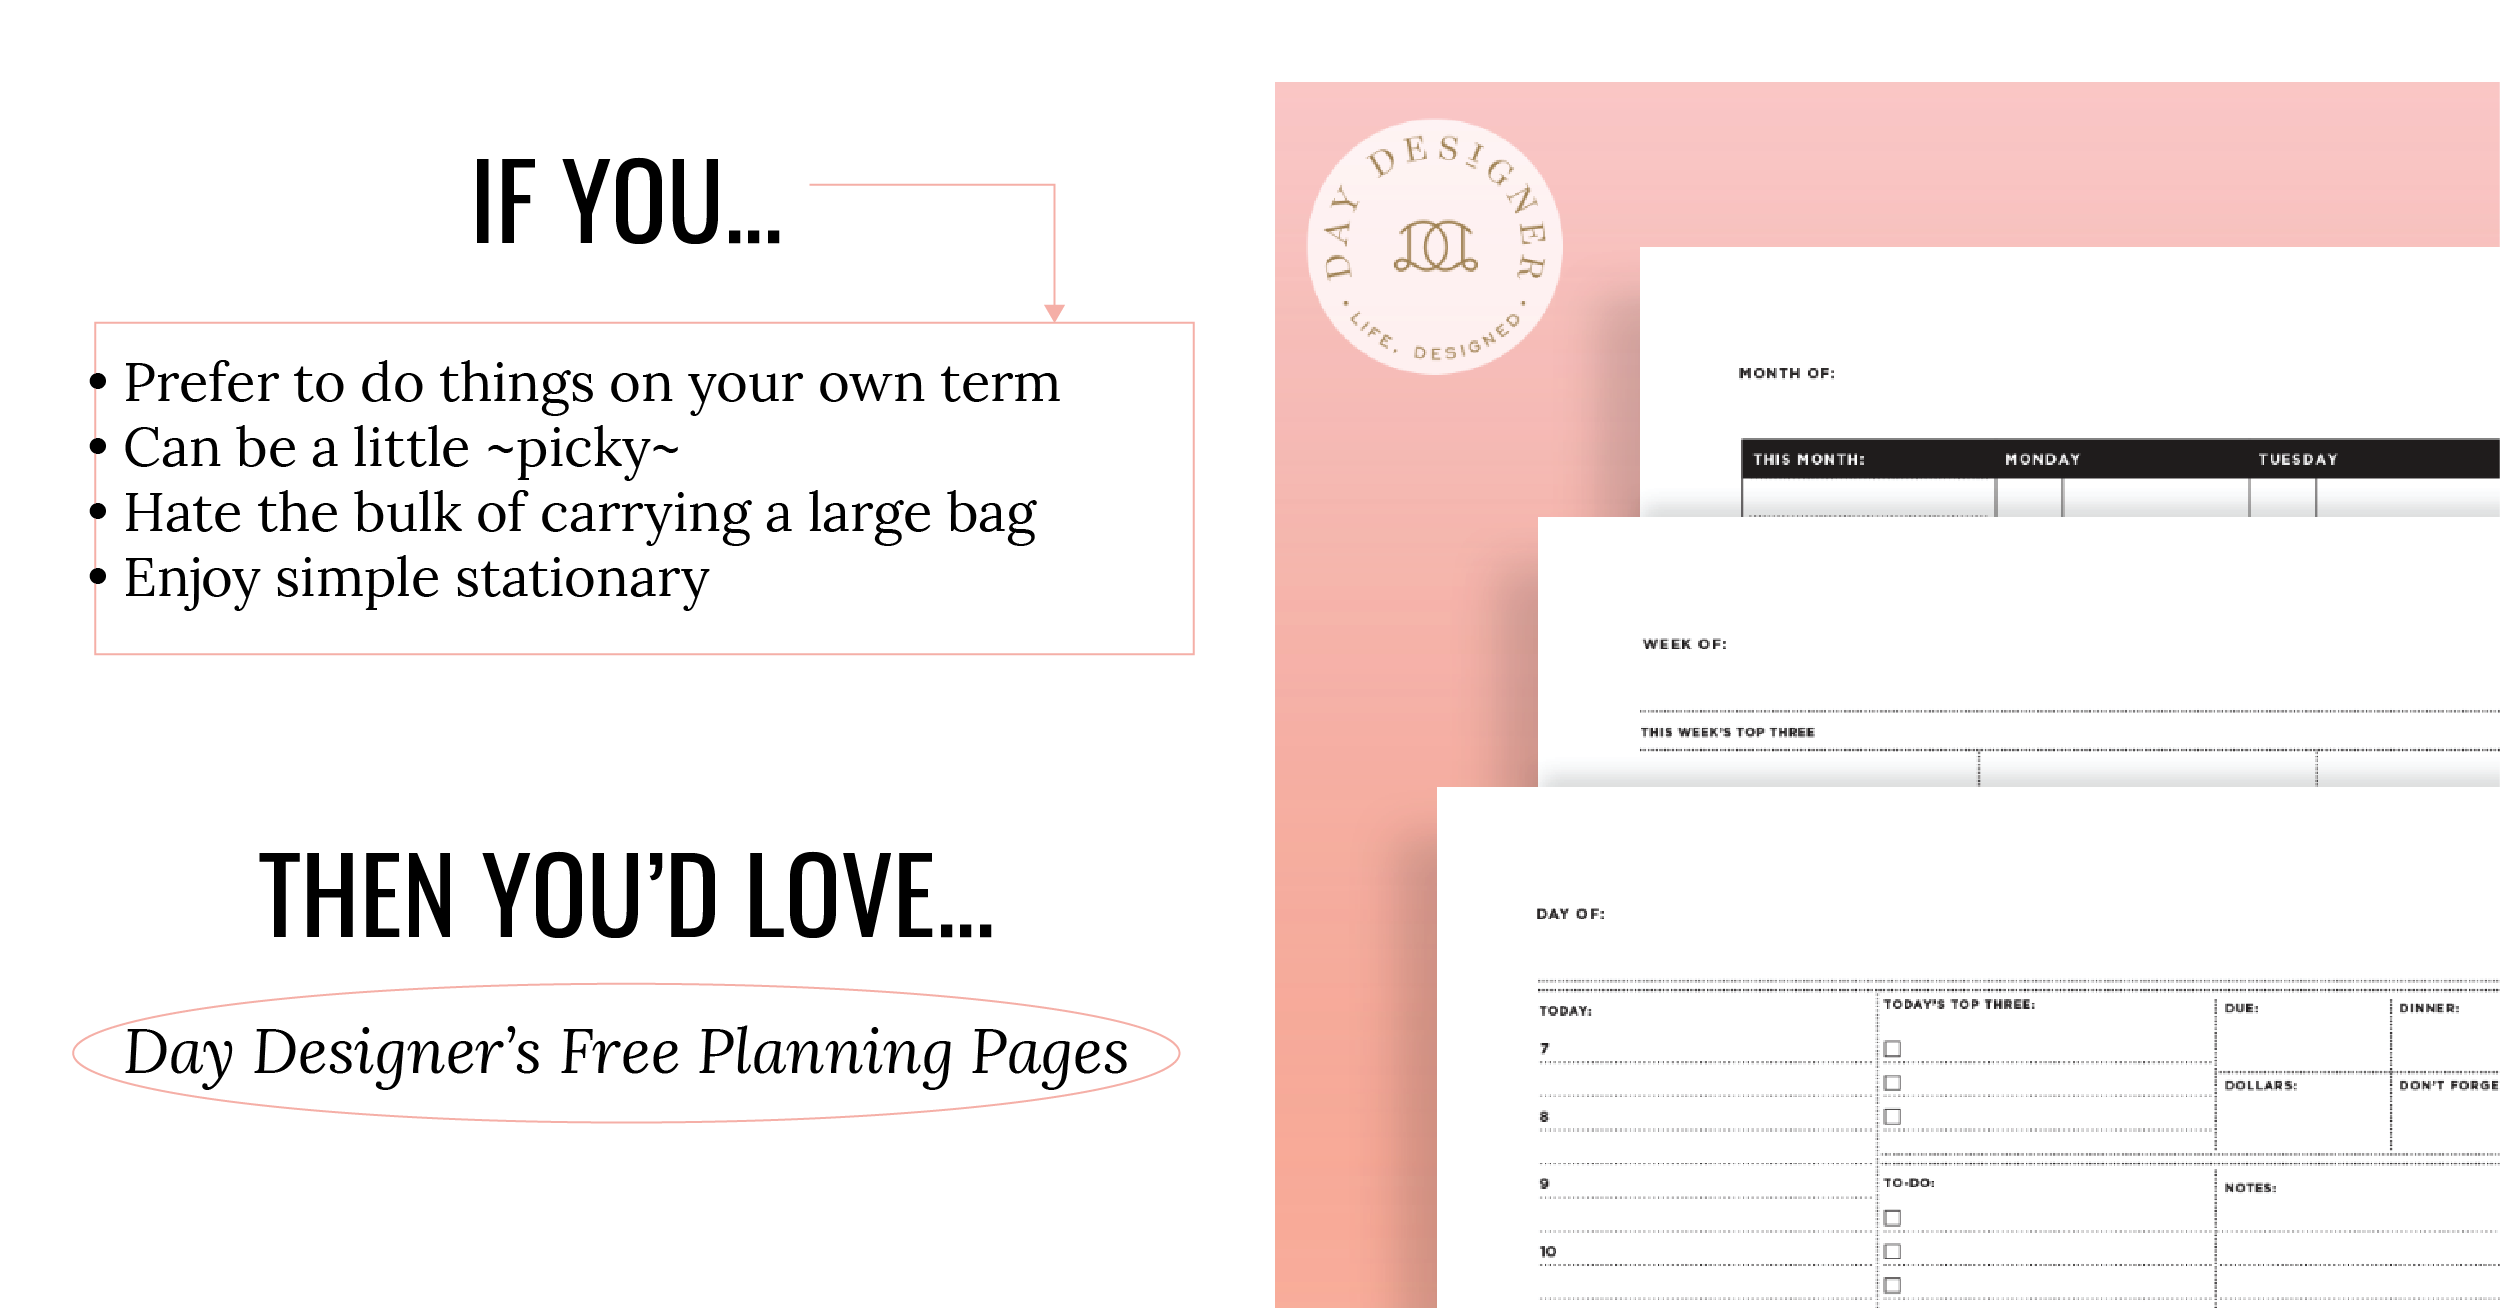 Day Designer's Printable Planning Pages